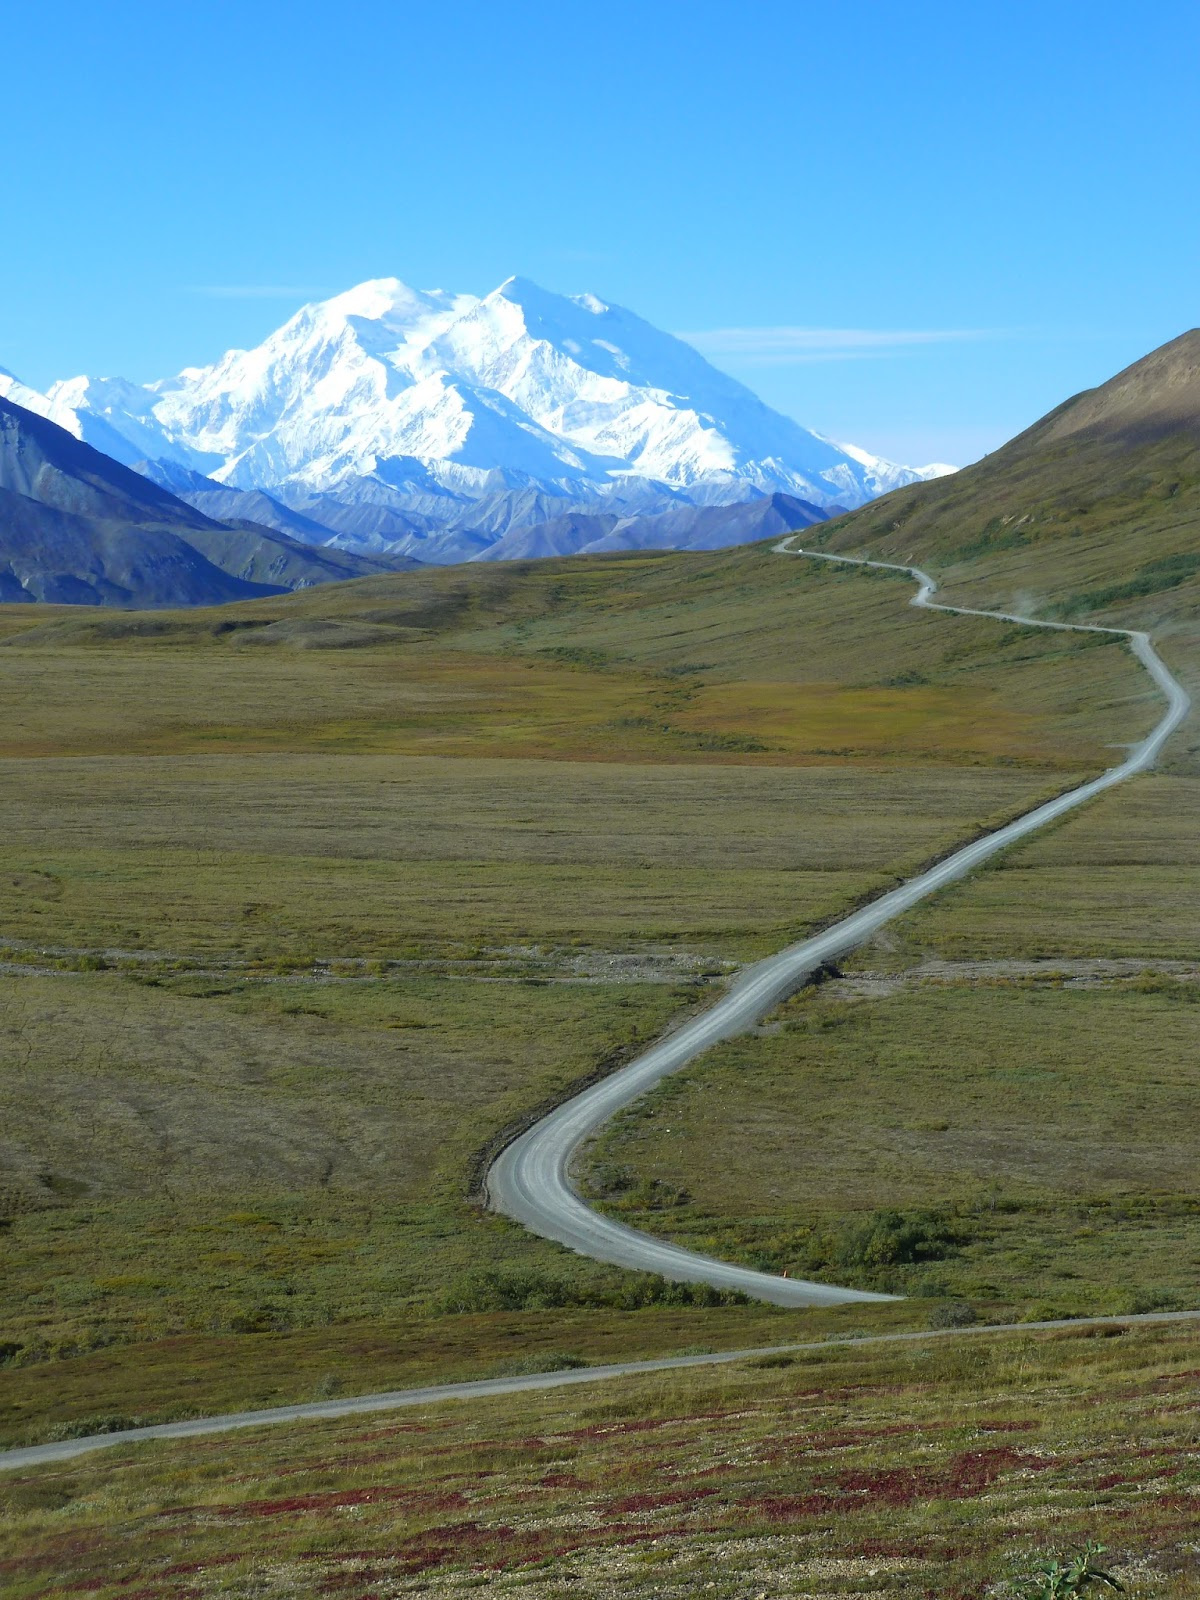 stony overlook is the first really good view of mt mckinley at the 62 mile mark